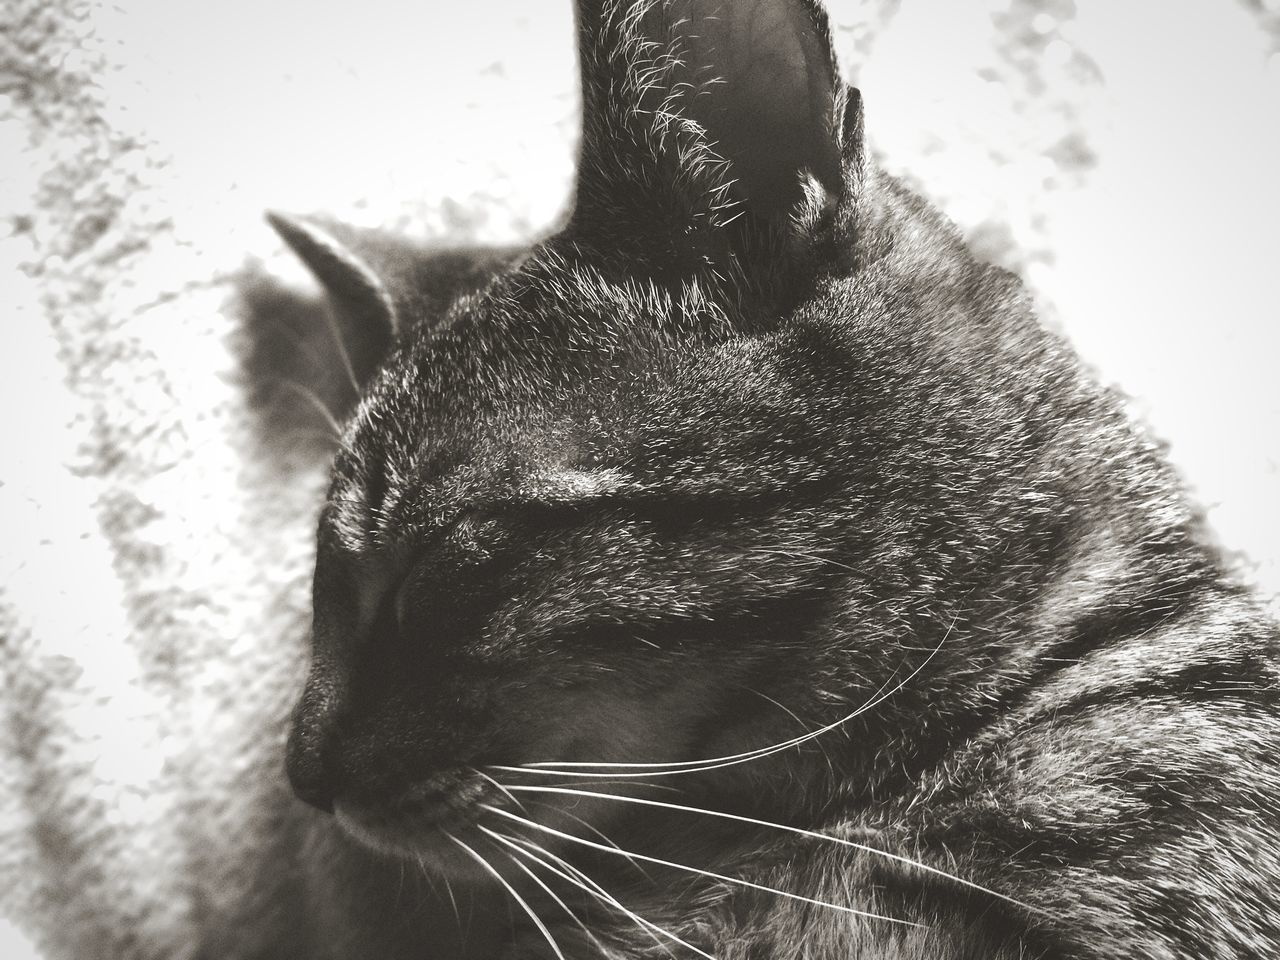 domestic cat, one animal, mammal, animal themes, domestic animals, no people, pets, feline, close-up, indoors, nature, day